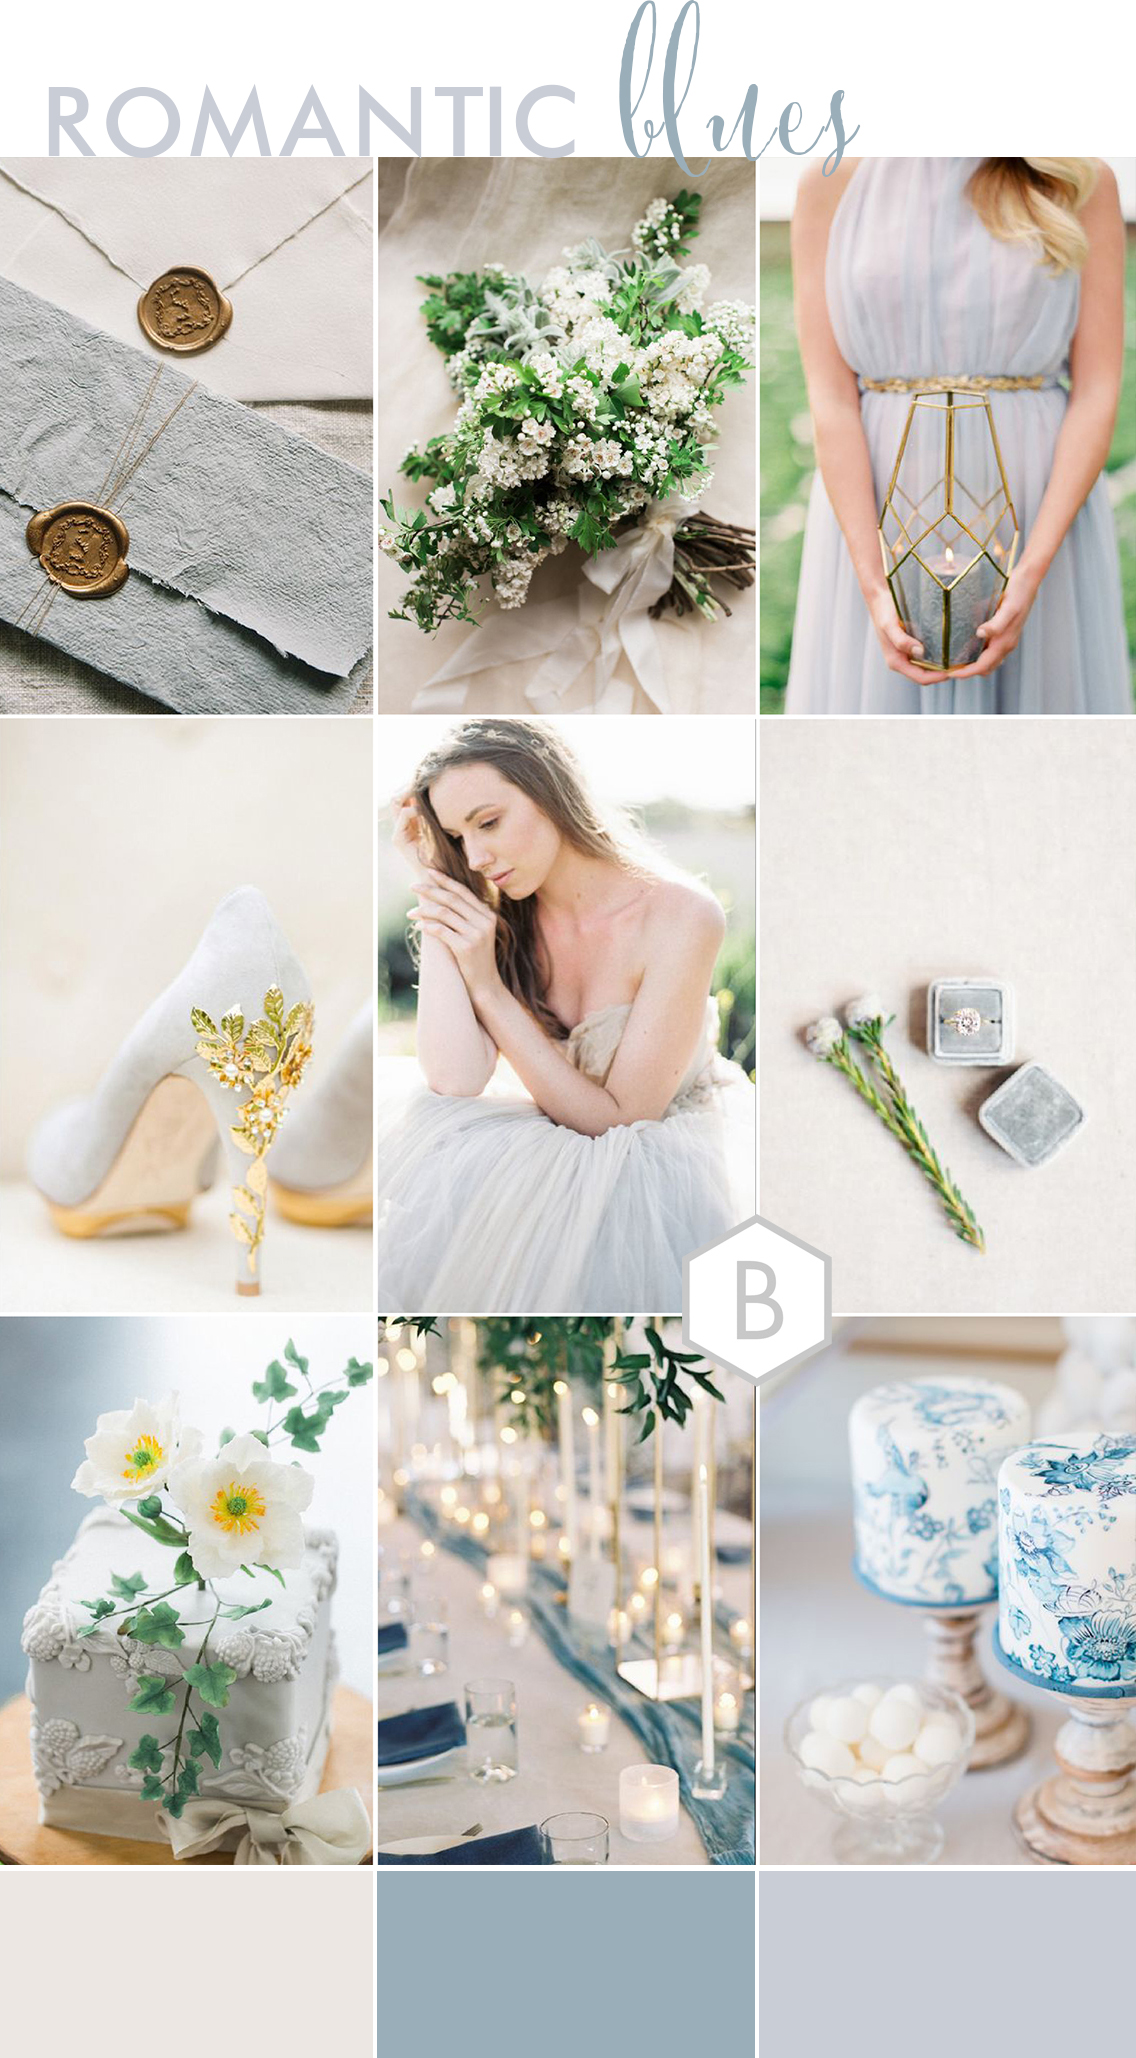 bloved-luxury-wedding-blog-romantic-blue-wedding-inspiration